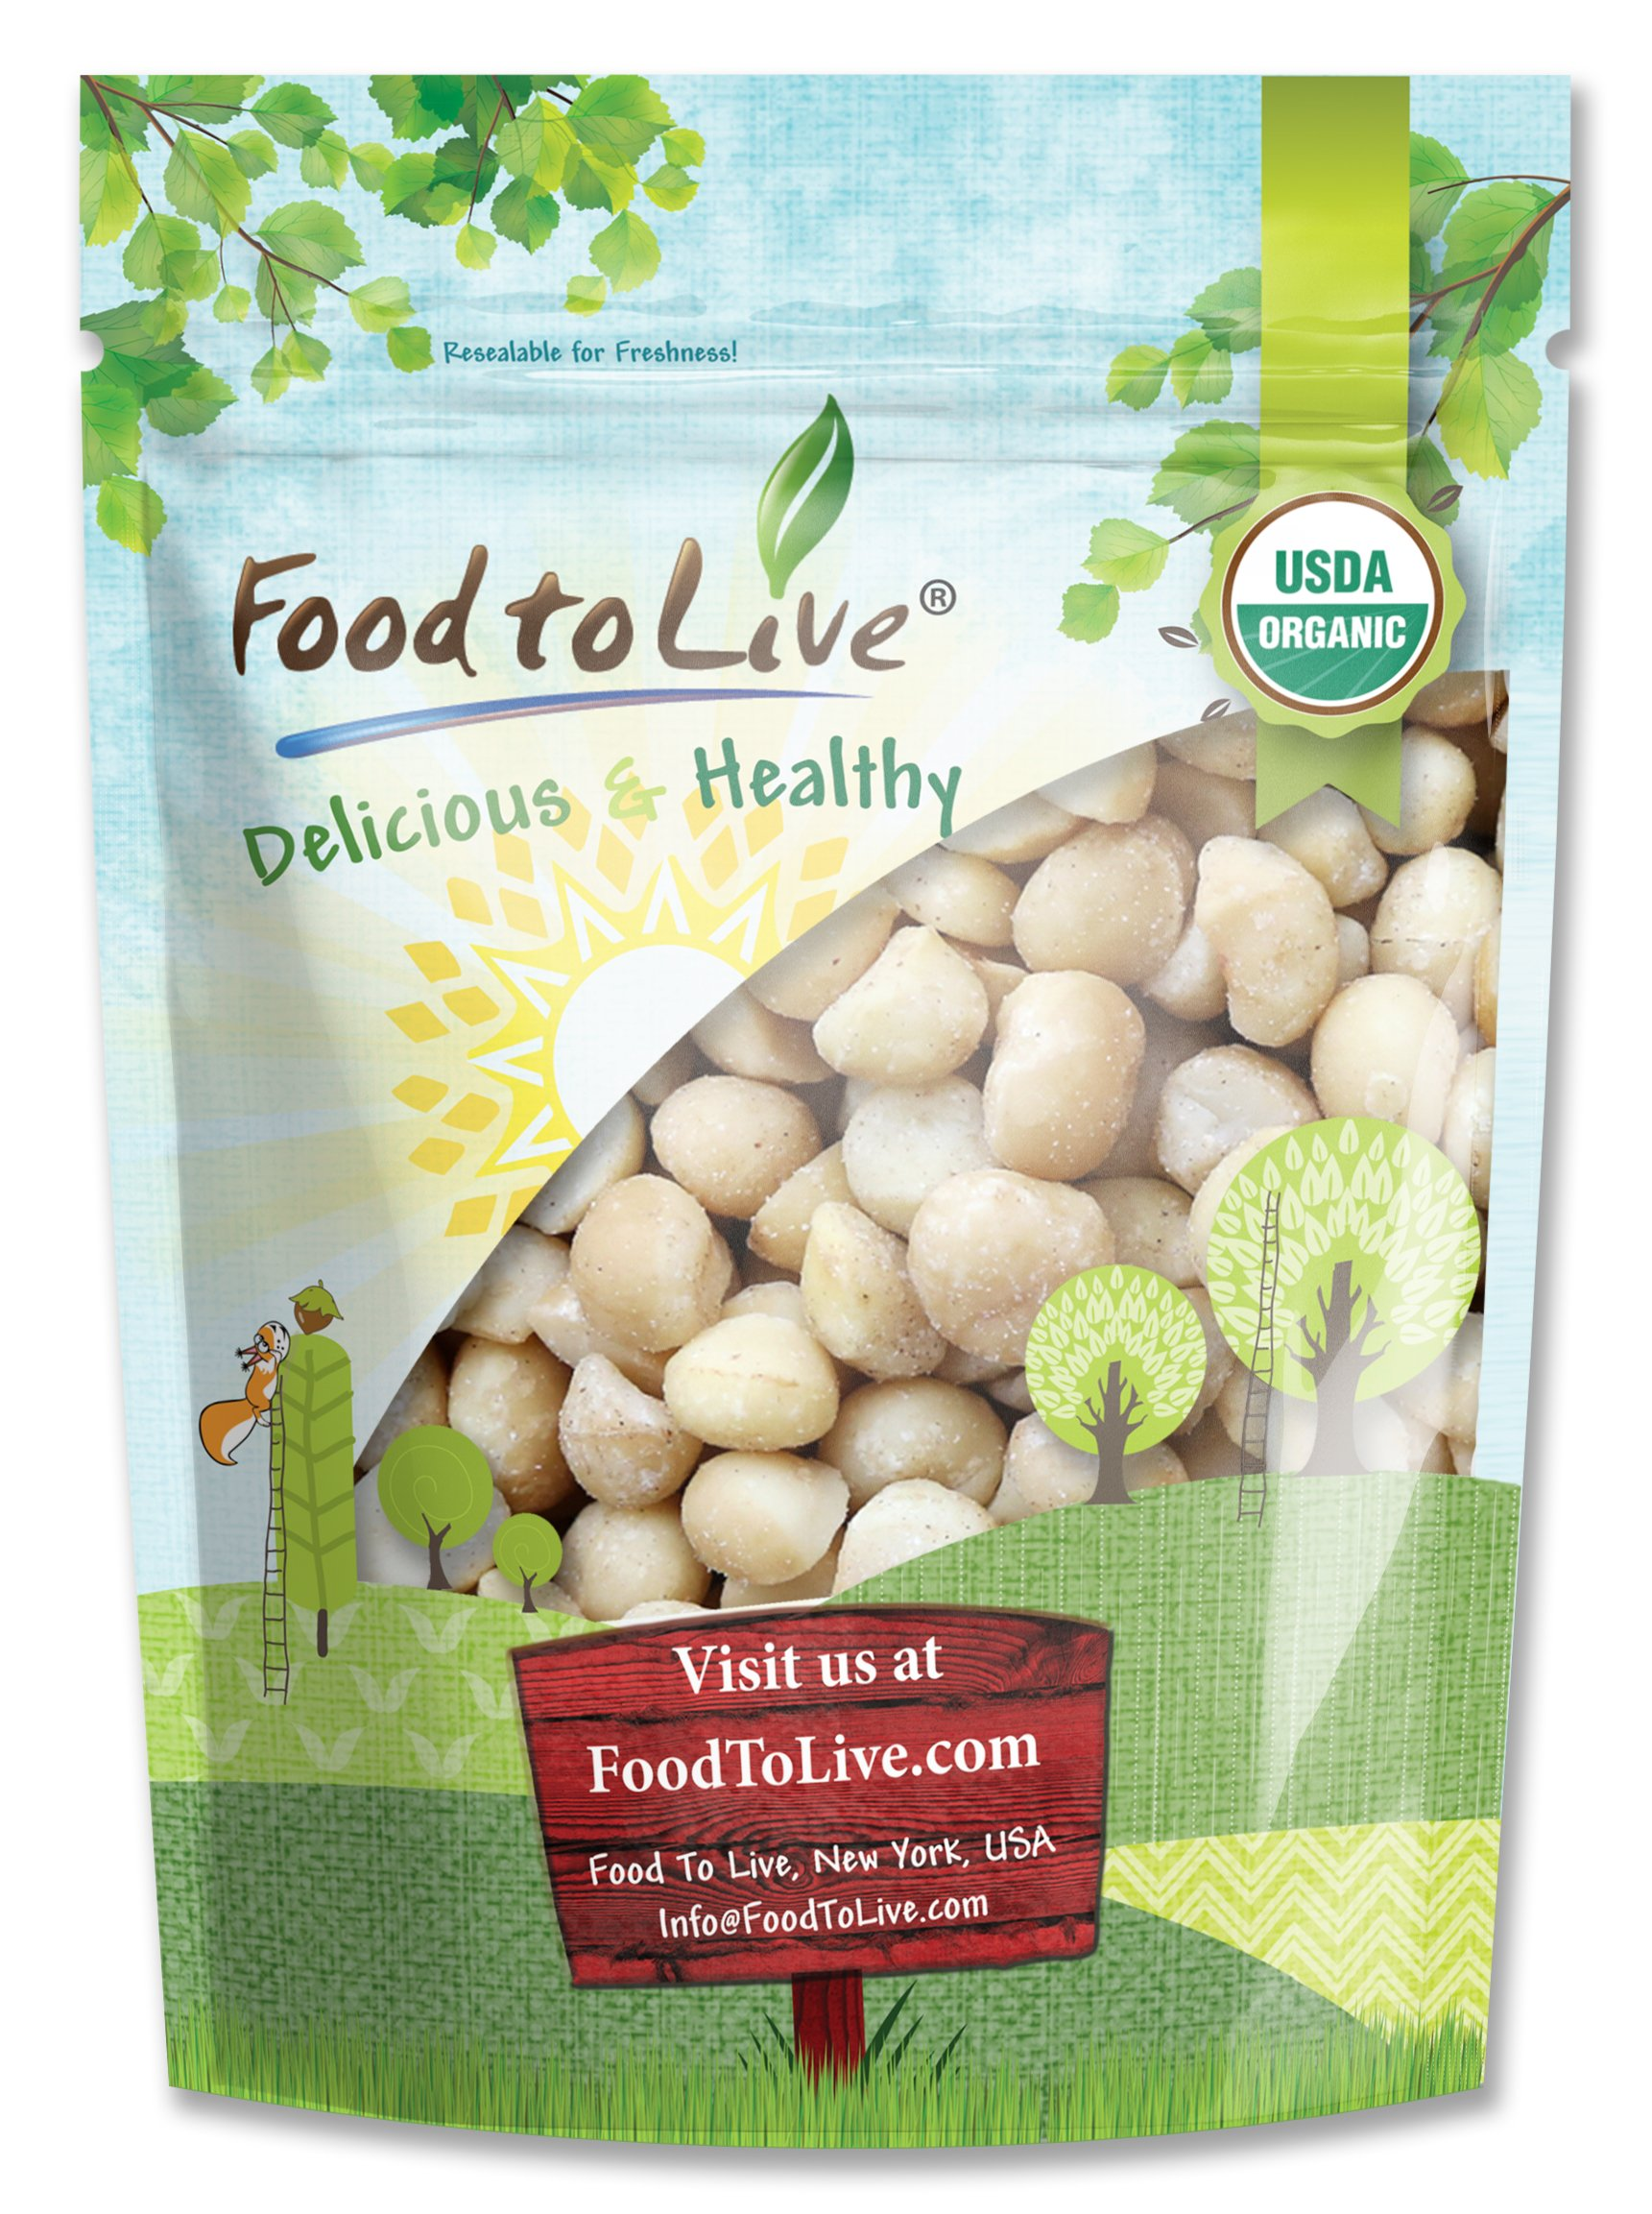 Food to Live Organic Macadamia Nuts (Raw) (1 Pound) by Food to Live (Image #1)